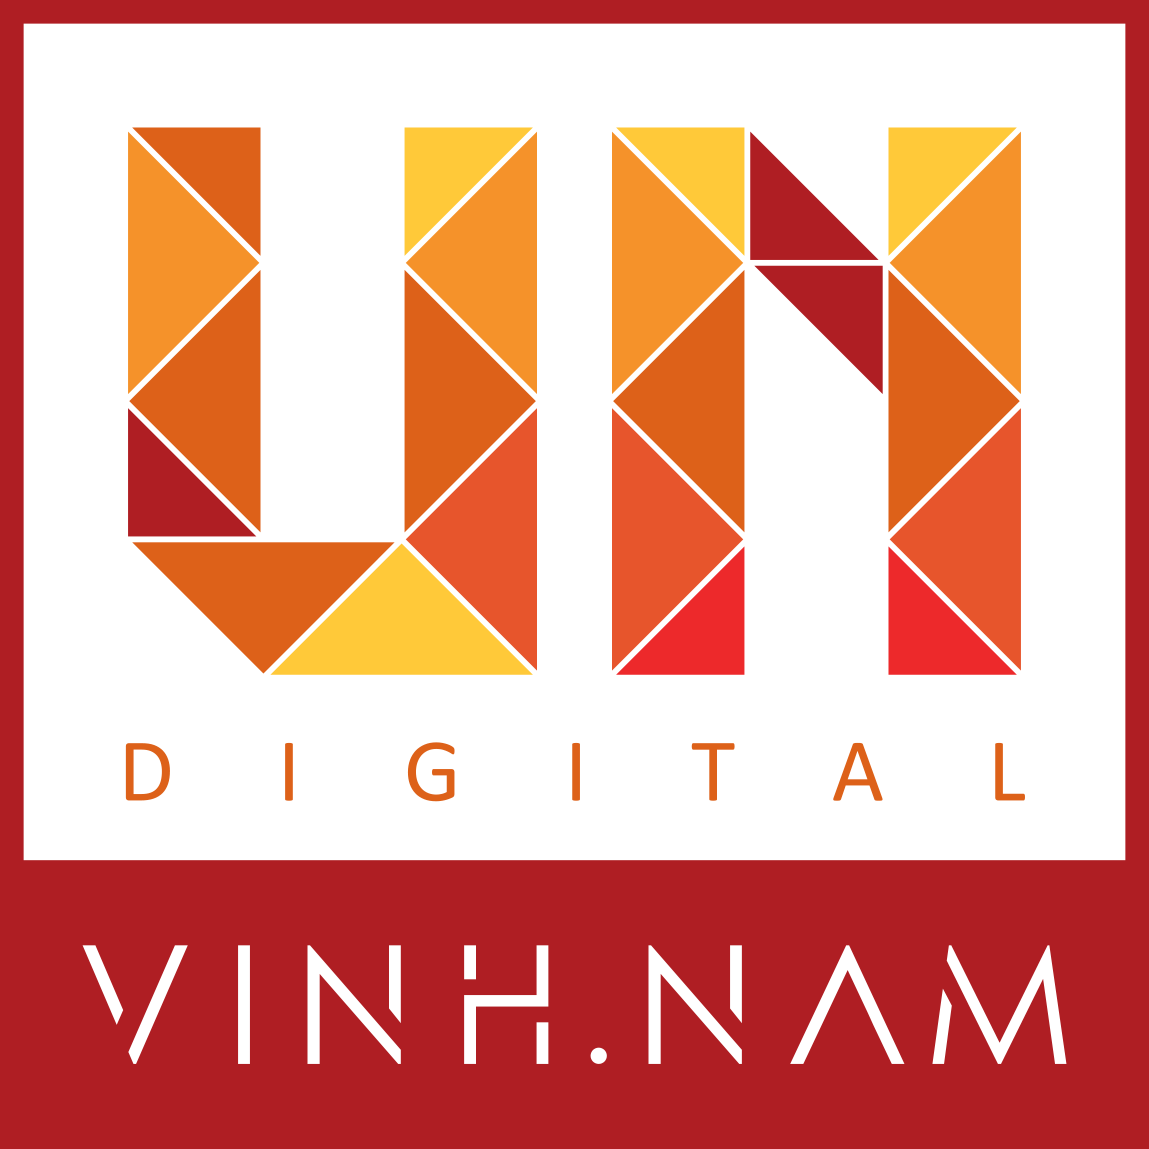 VINHNAM DIGITAL